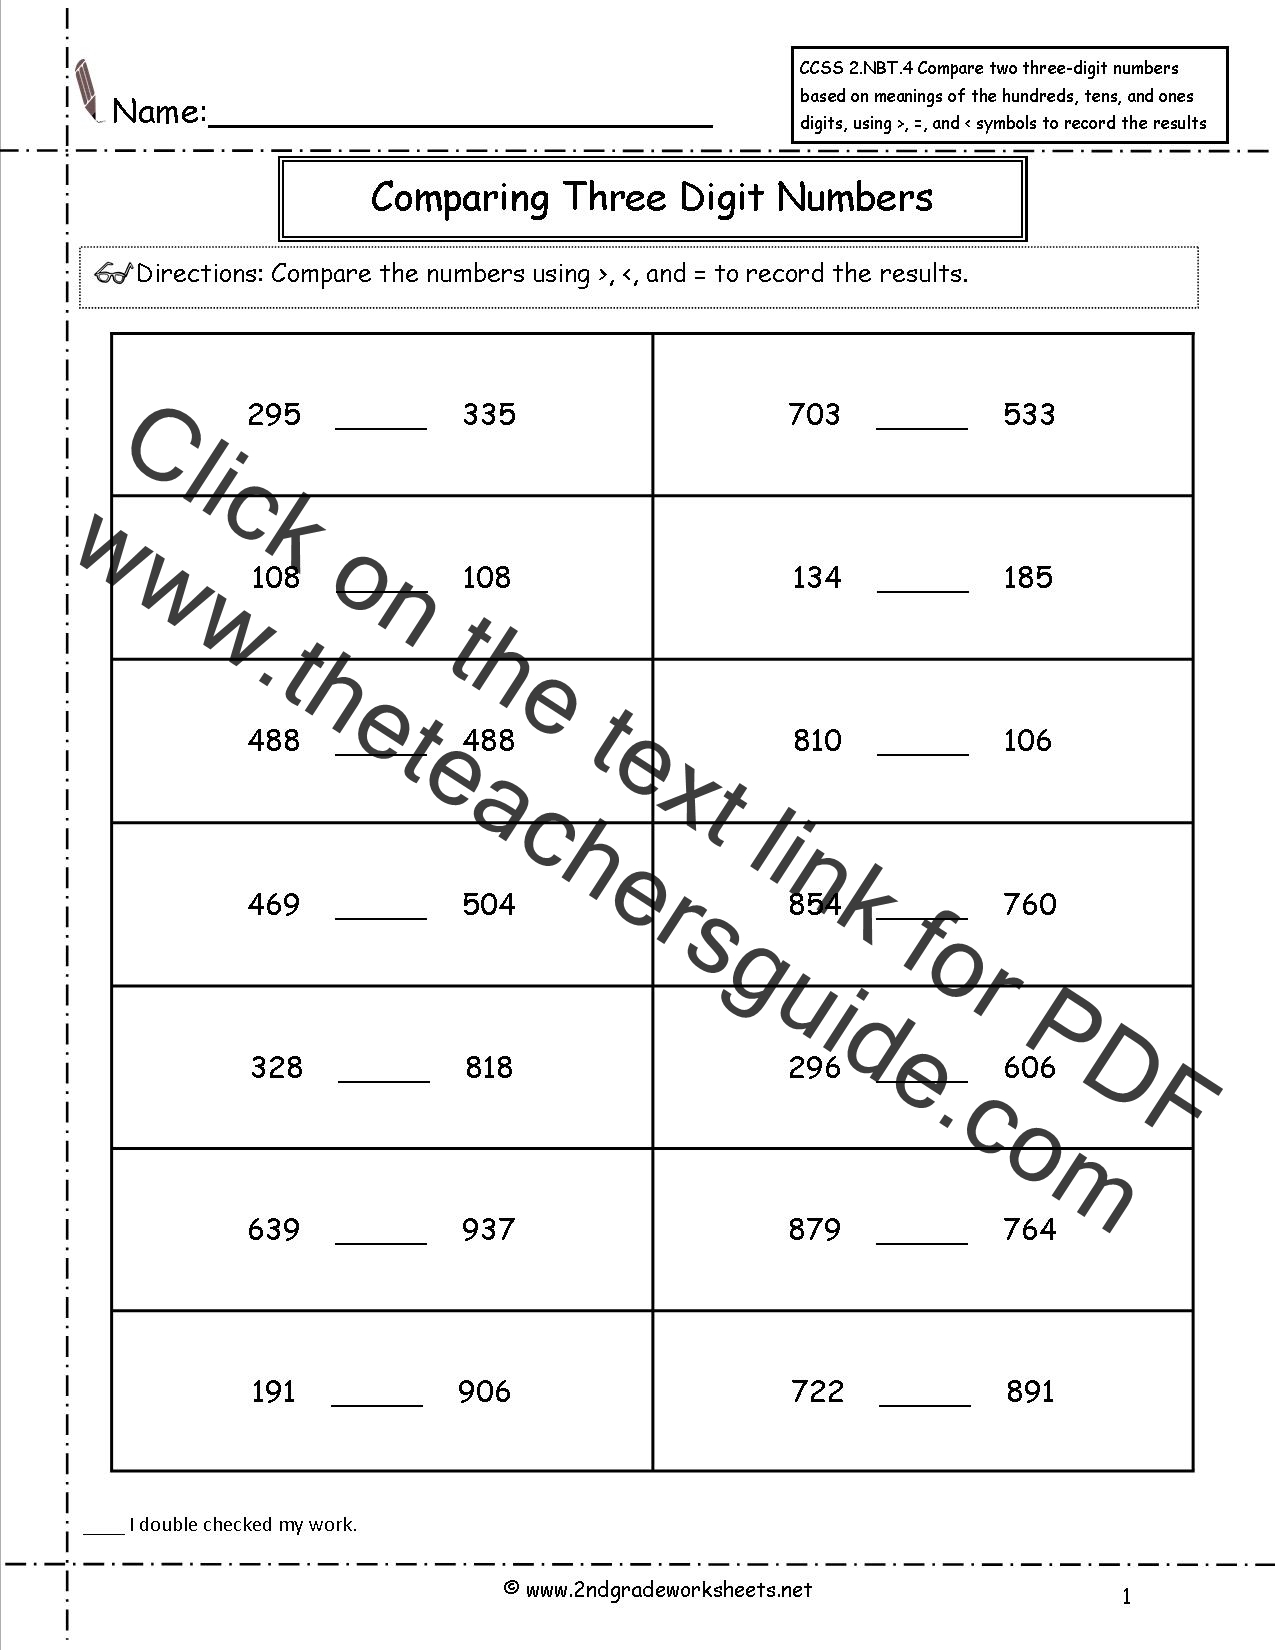 Worksheets Common Core Math 4th Grade Worksheets 2nd grade math common core state standards worksheets ccss 2 nbt 4 worksheets